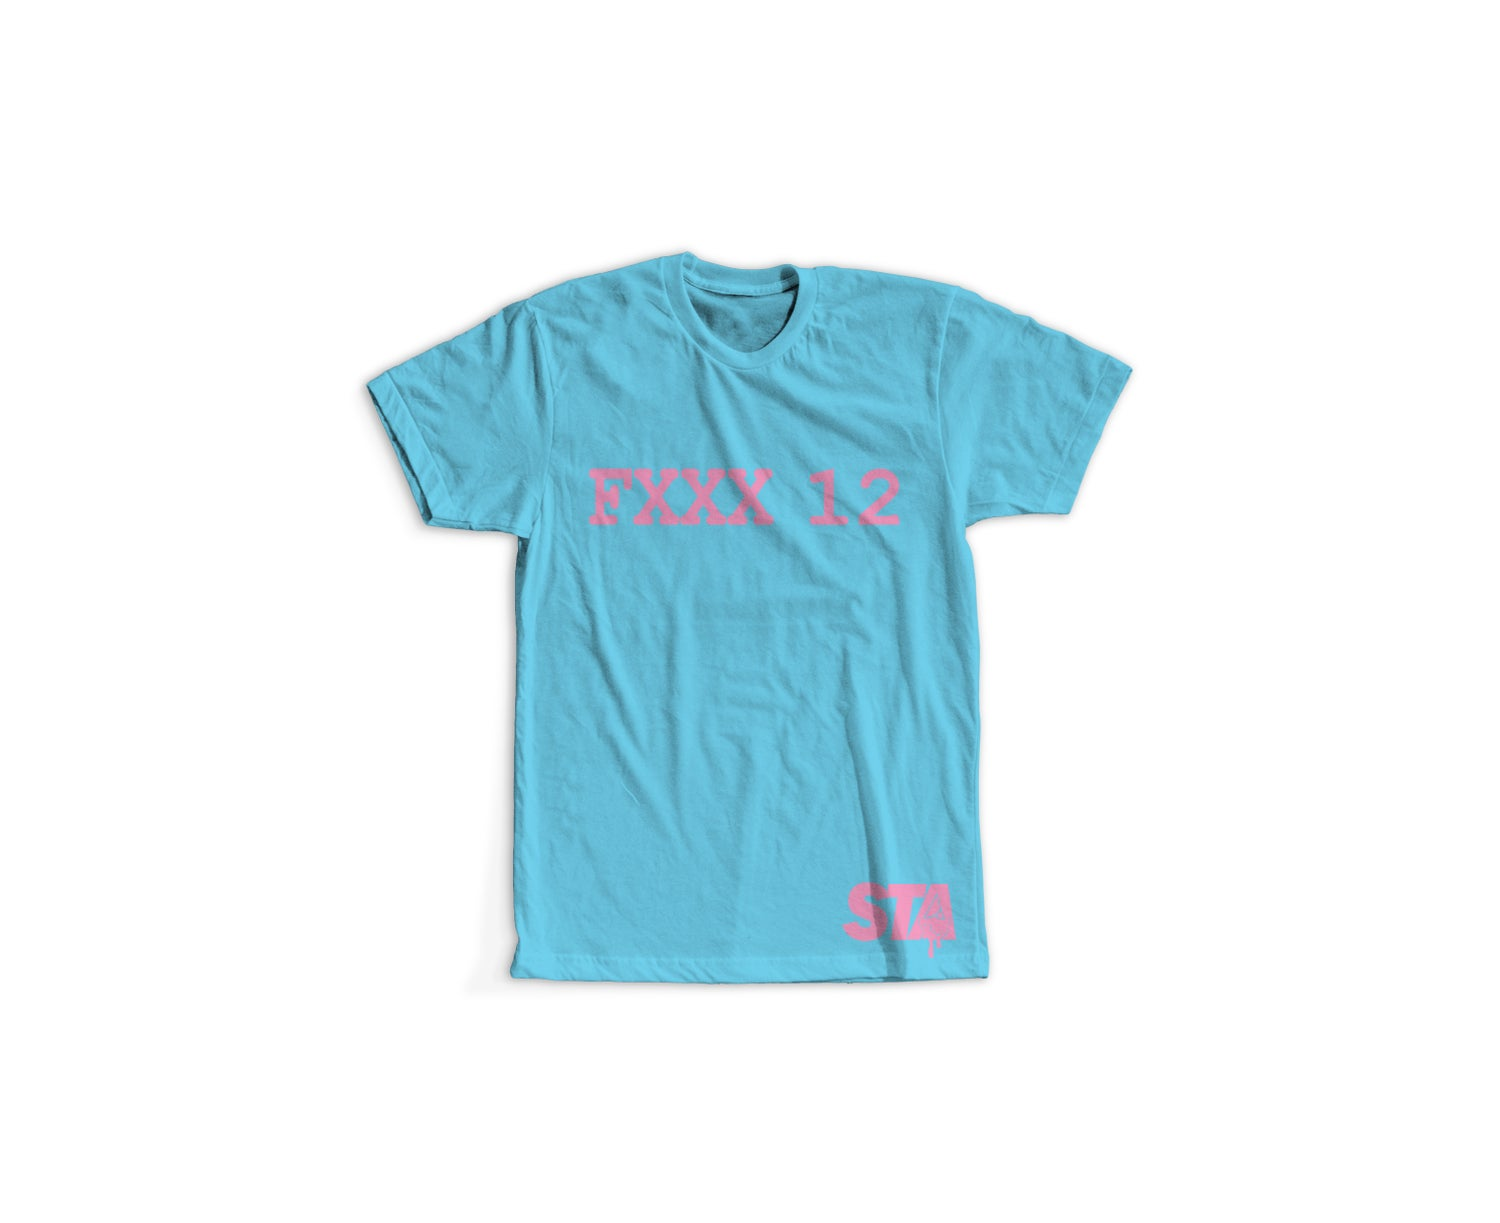 Image of FXXX 12 Tee Cotton Candy